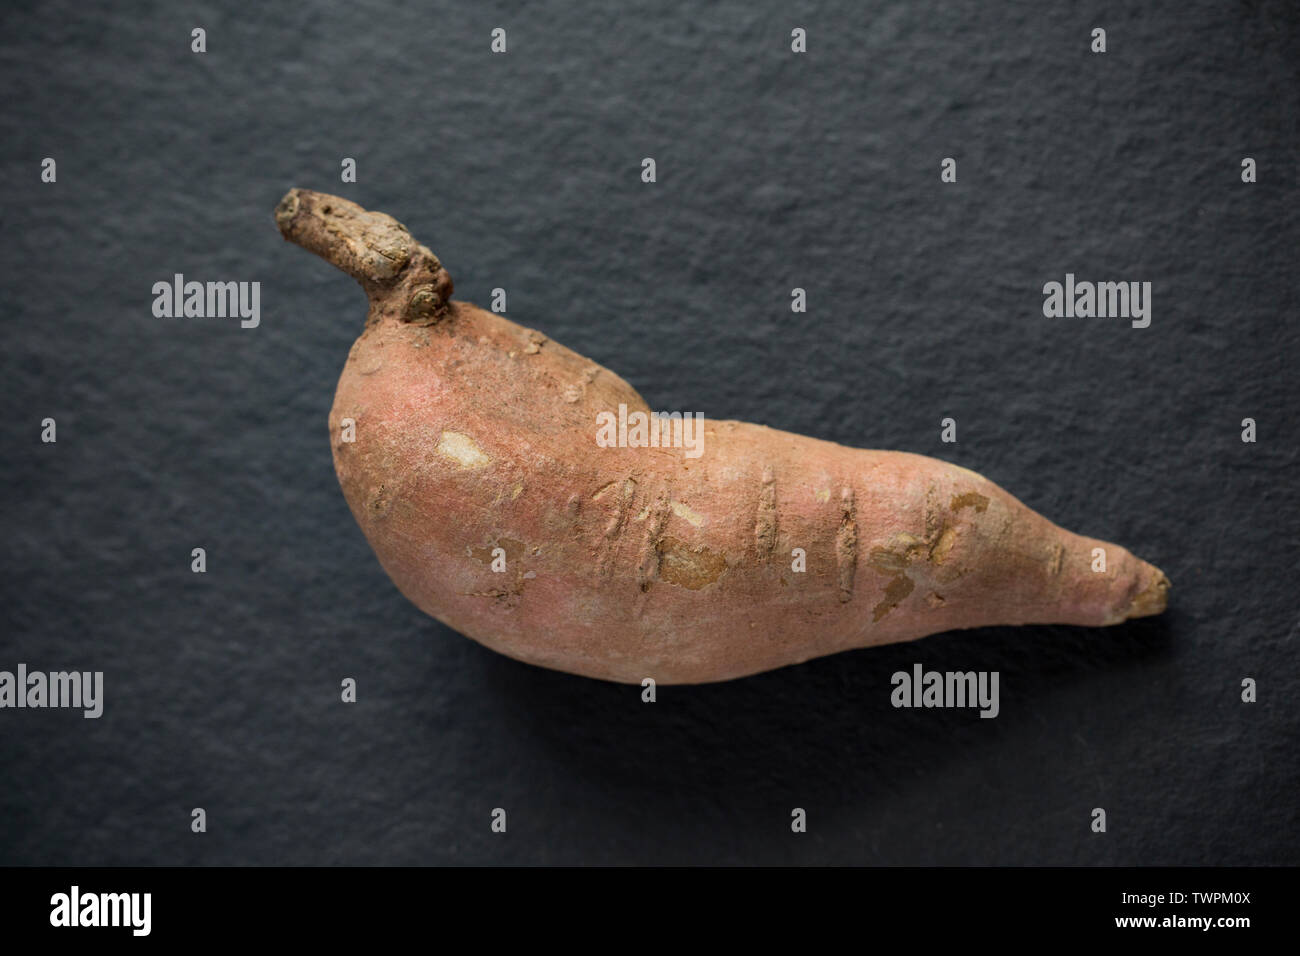 A single raw, uncooked sweet potato imported from the USA and bought from a supermarket in the UK displayed on a dark stone background. Dorset England - Stock Image